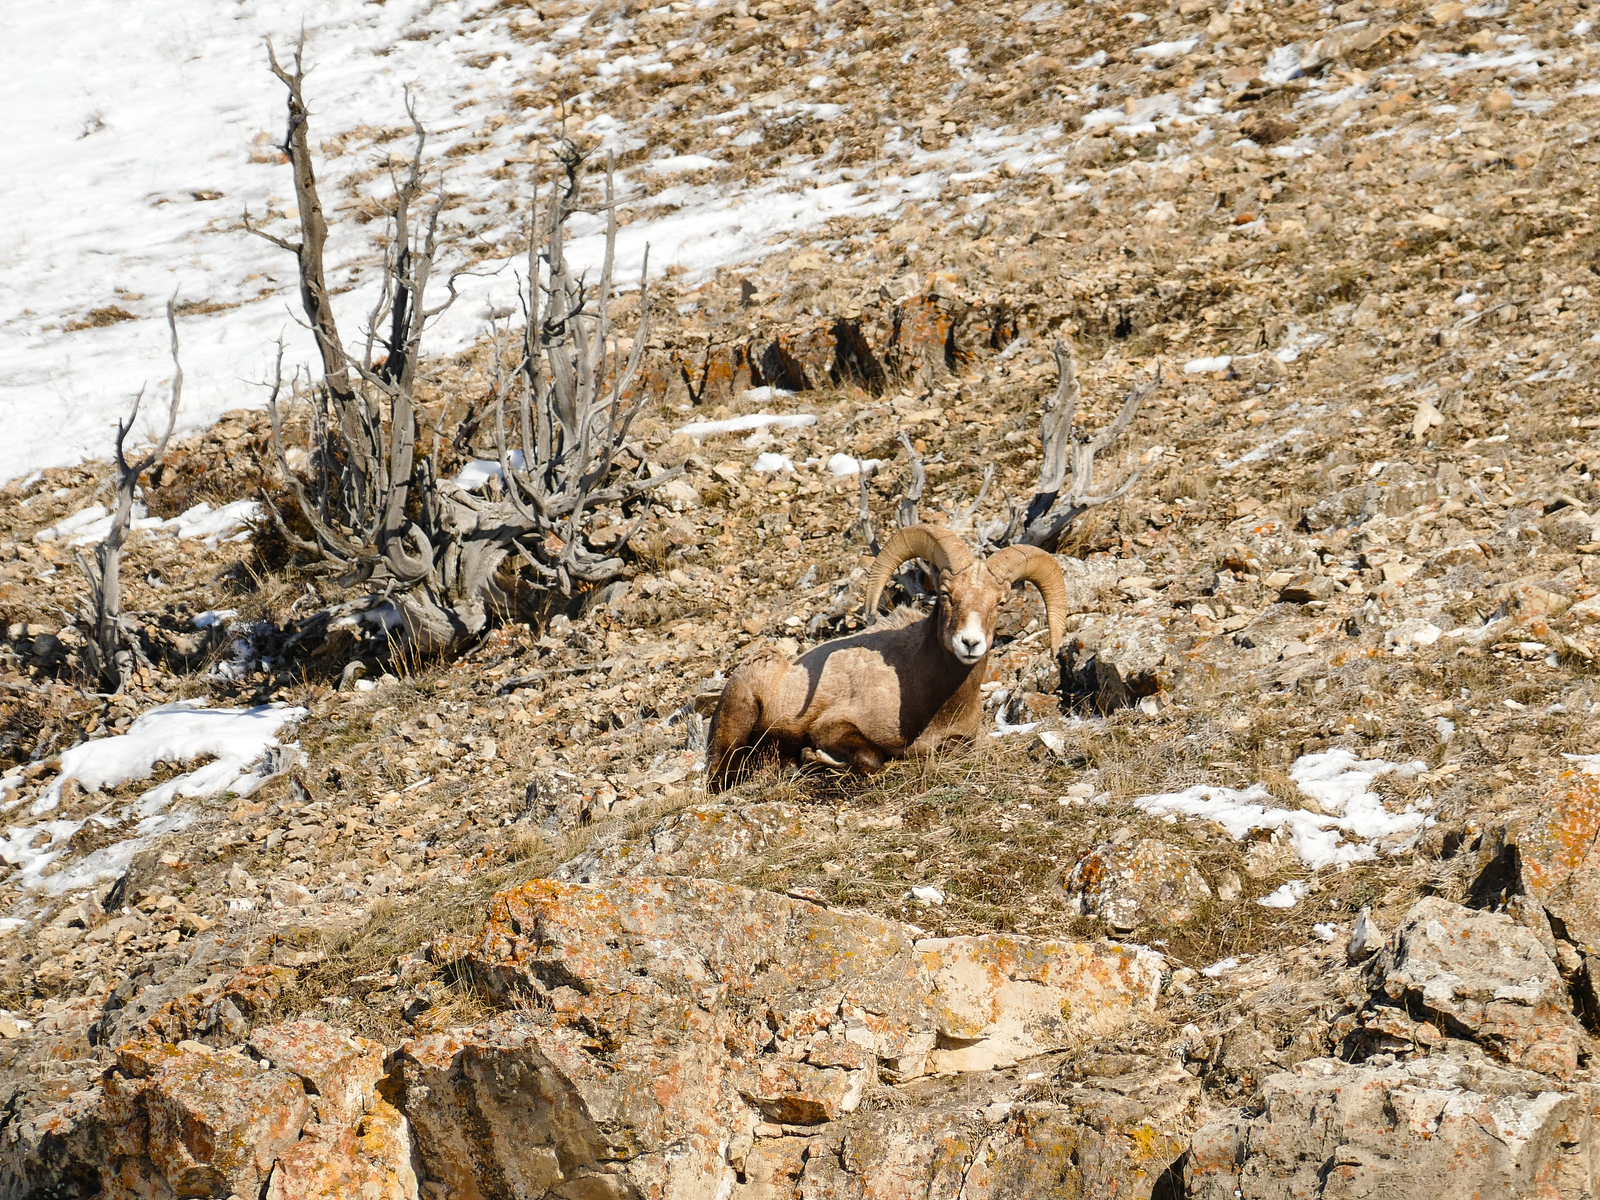 Bighorn sheep on the side of a hill during a Lamar Valley Yellowstone winter trip.